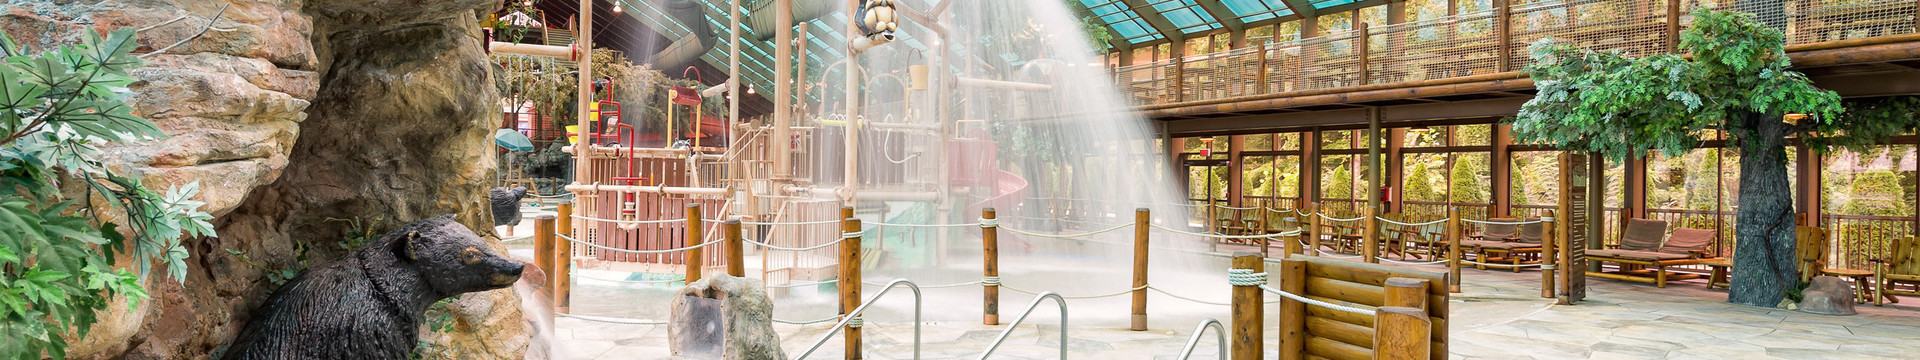 Gatlinburg Resort near the Smoky Mountains | Indoor Waterpark